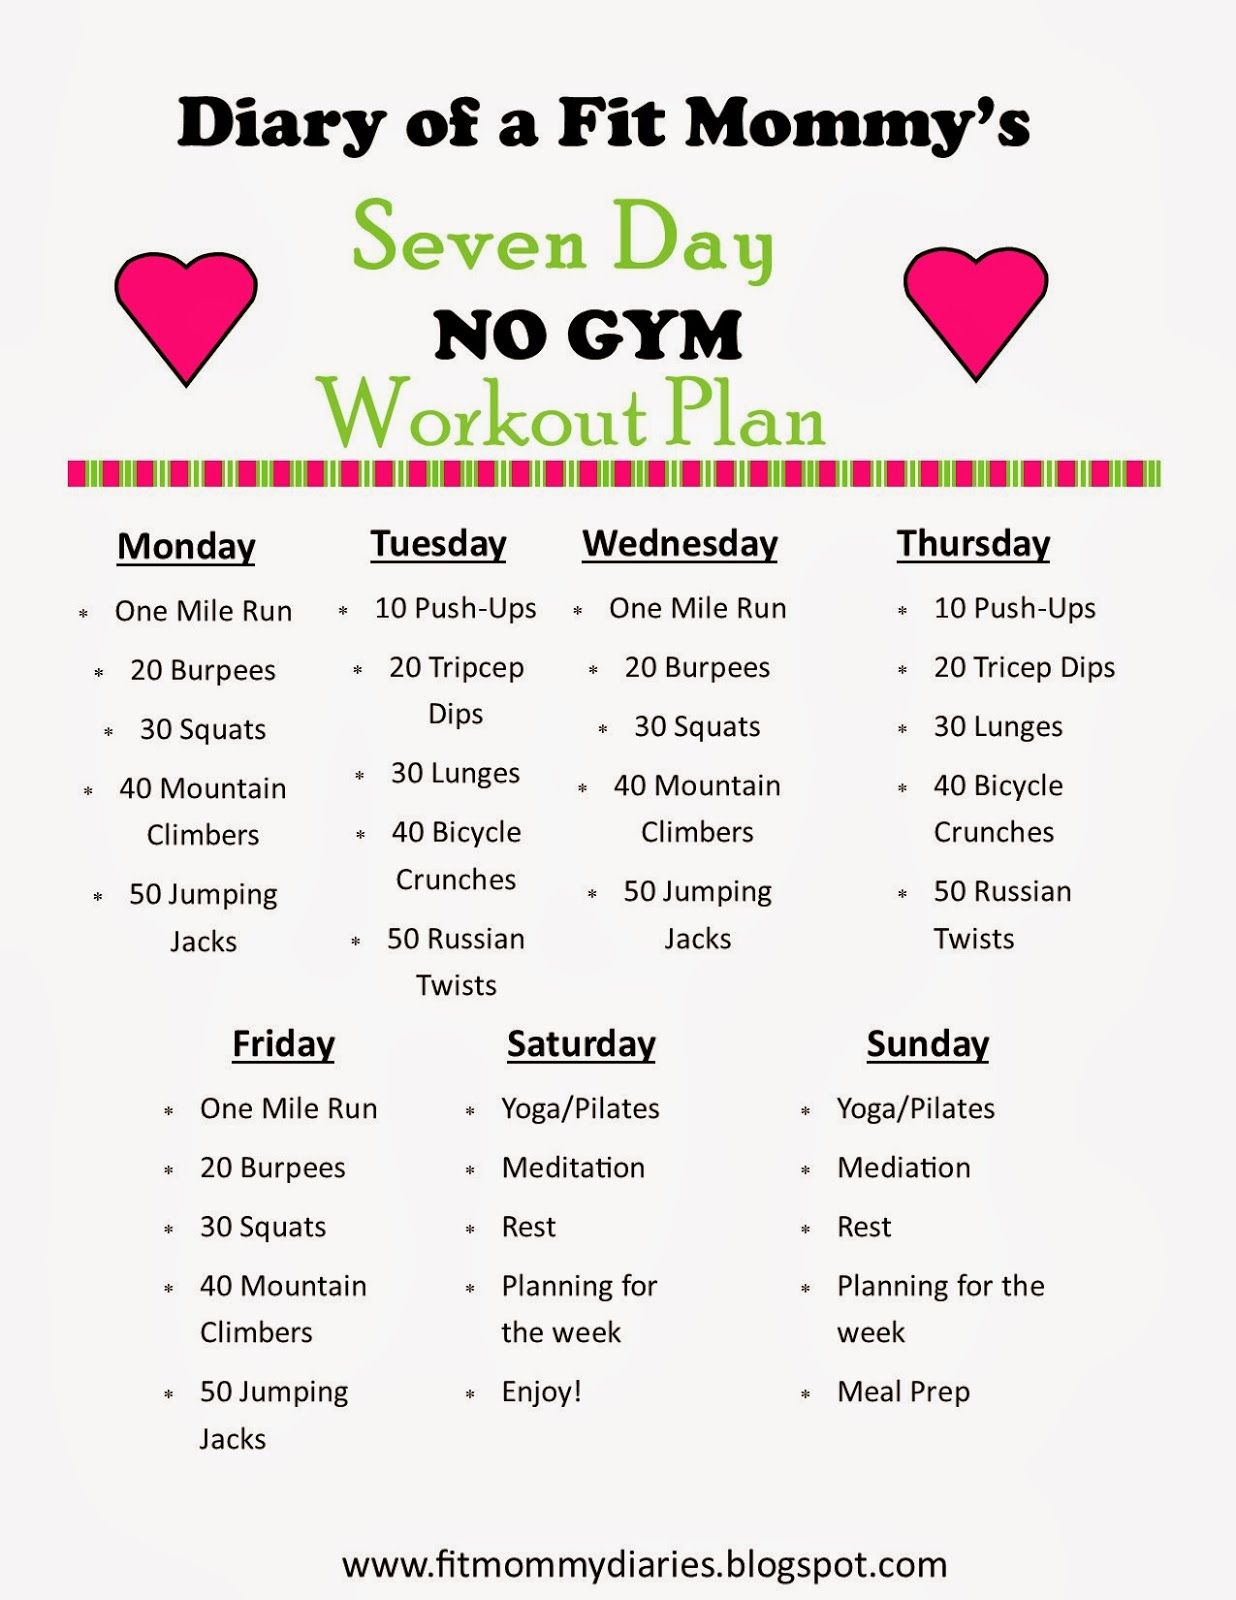 7 Day No Gym Workout Plan If You Re Like Me Having Kids No Sitter A Gym Is Out Of The Question Mommy Workout Workout Plan Gym Workout Plan